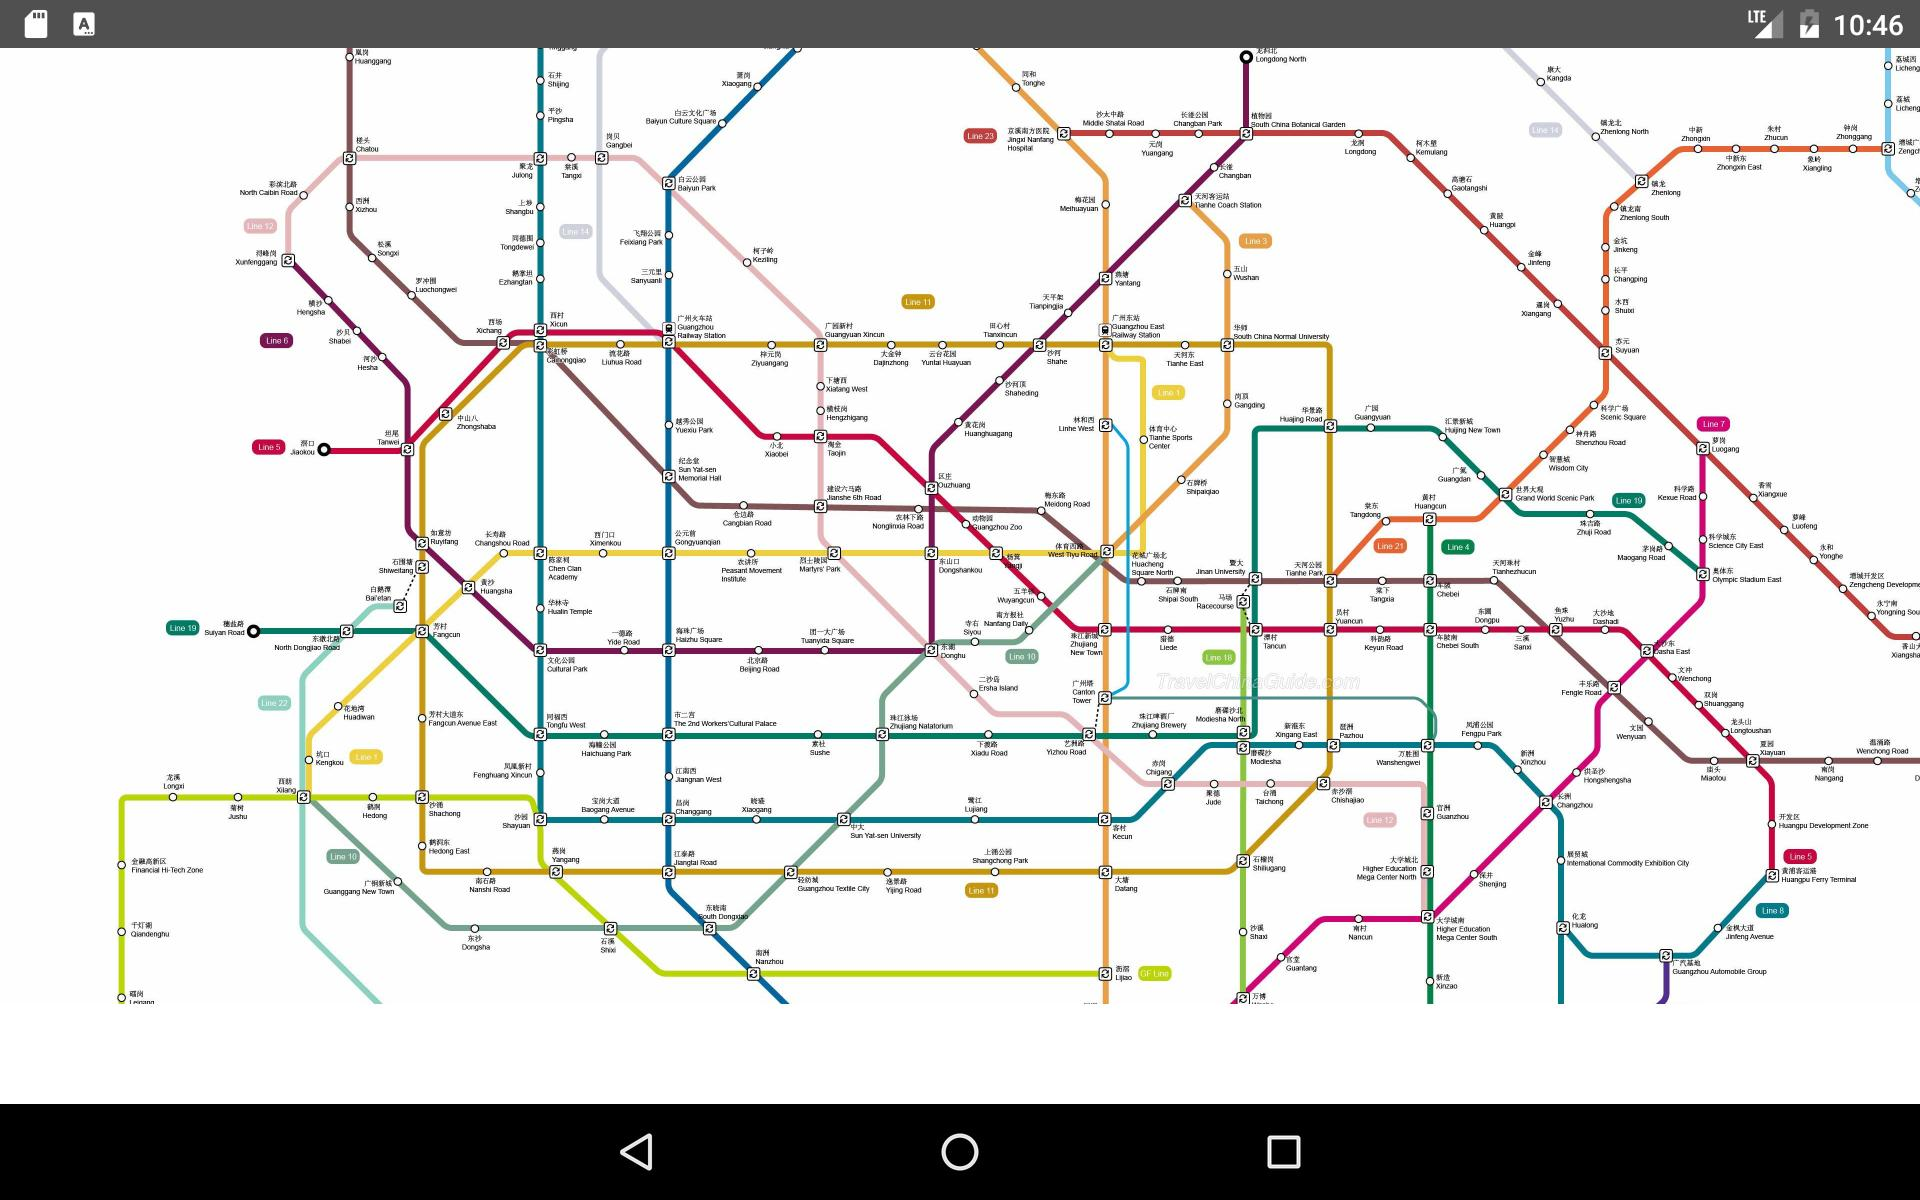 Guangzhou Subway Map 2017.Guangzhou Subway 2017 For Android Apk Download